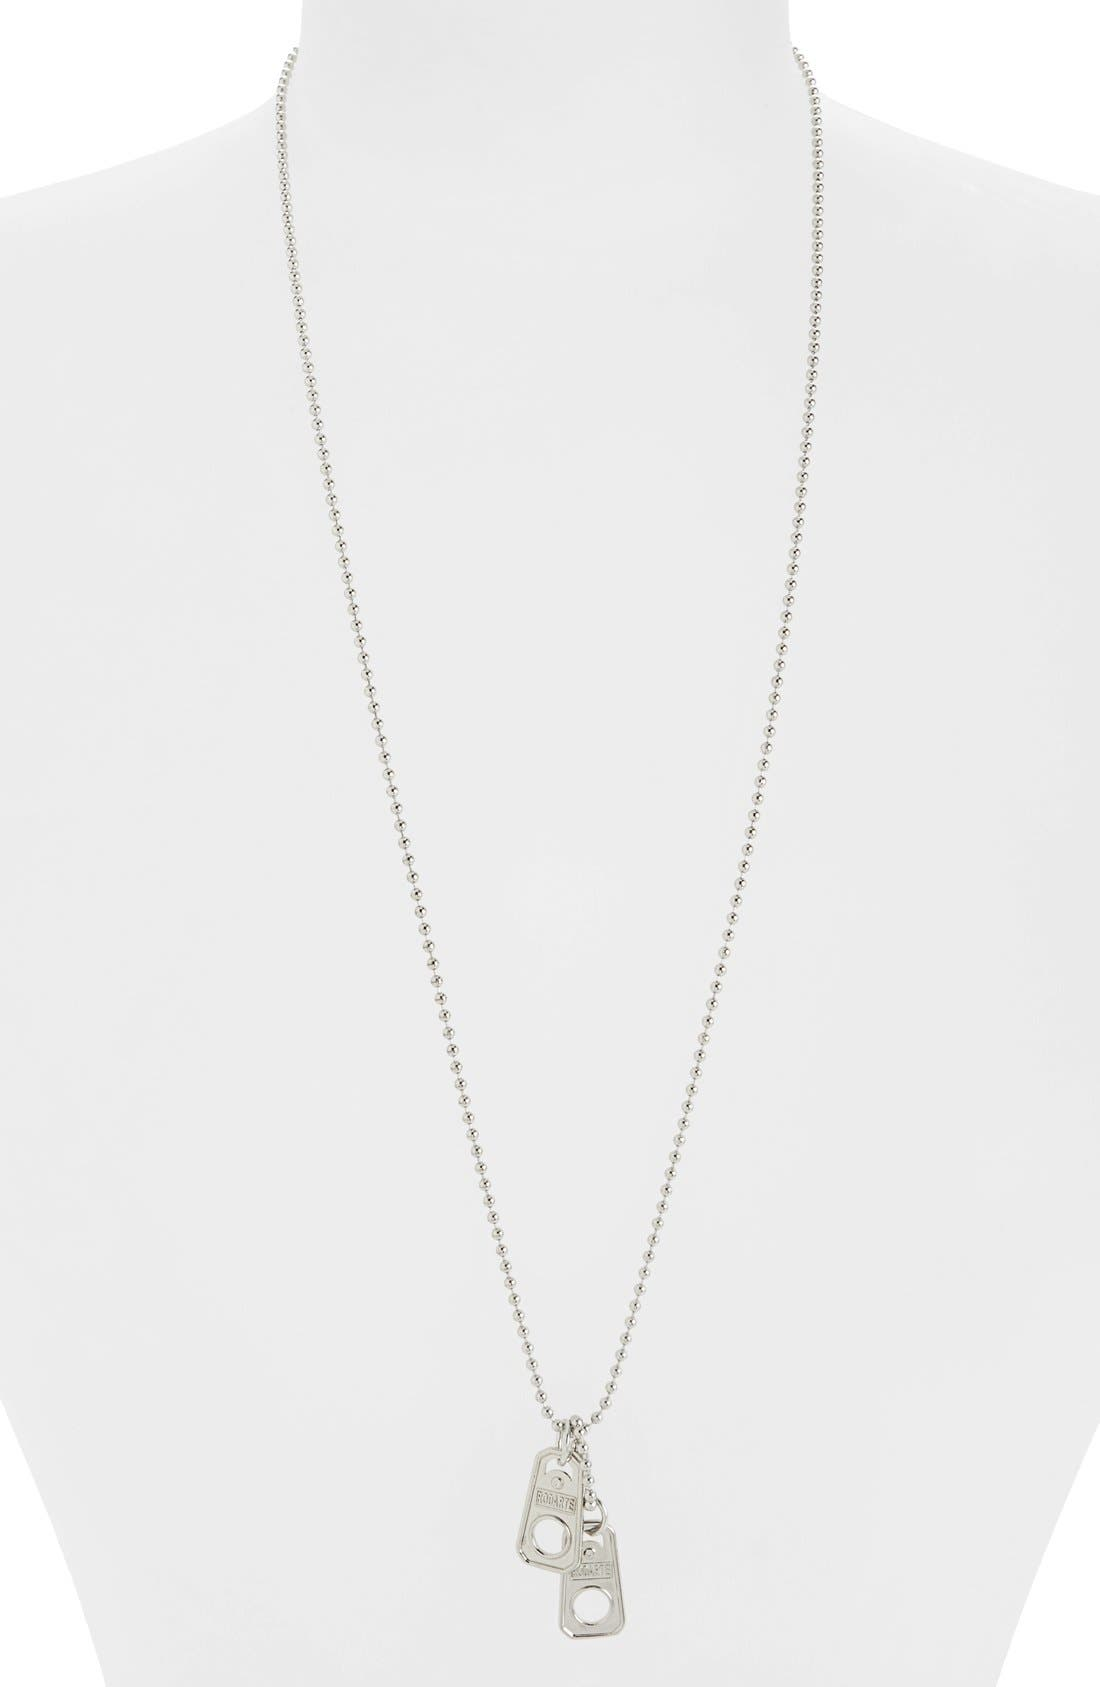 Ball Chain Necklace with Soda Can Pull Tab Pendants,                             Alternate thumbnail 2, color,                             040